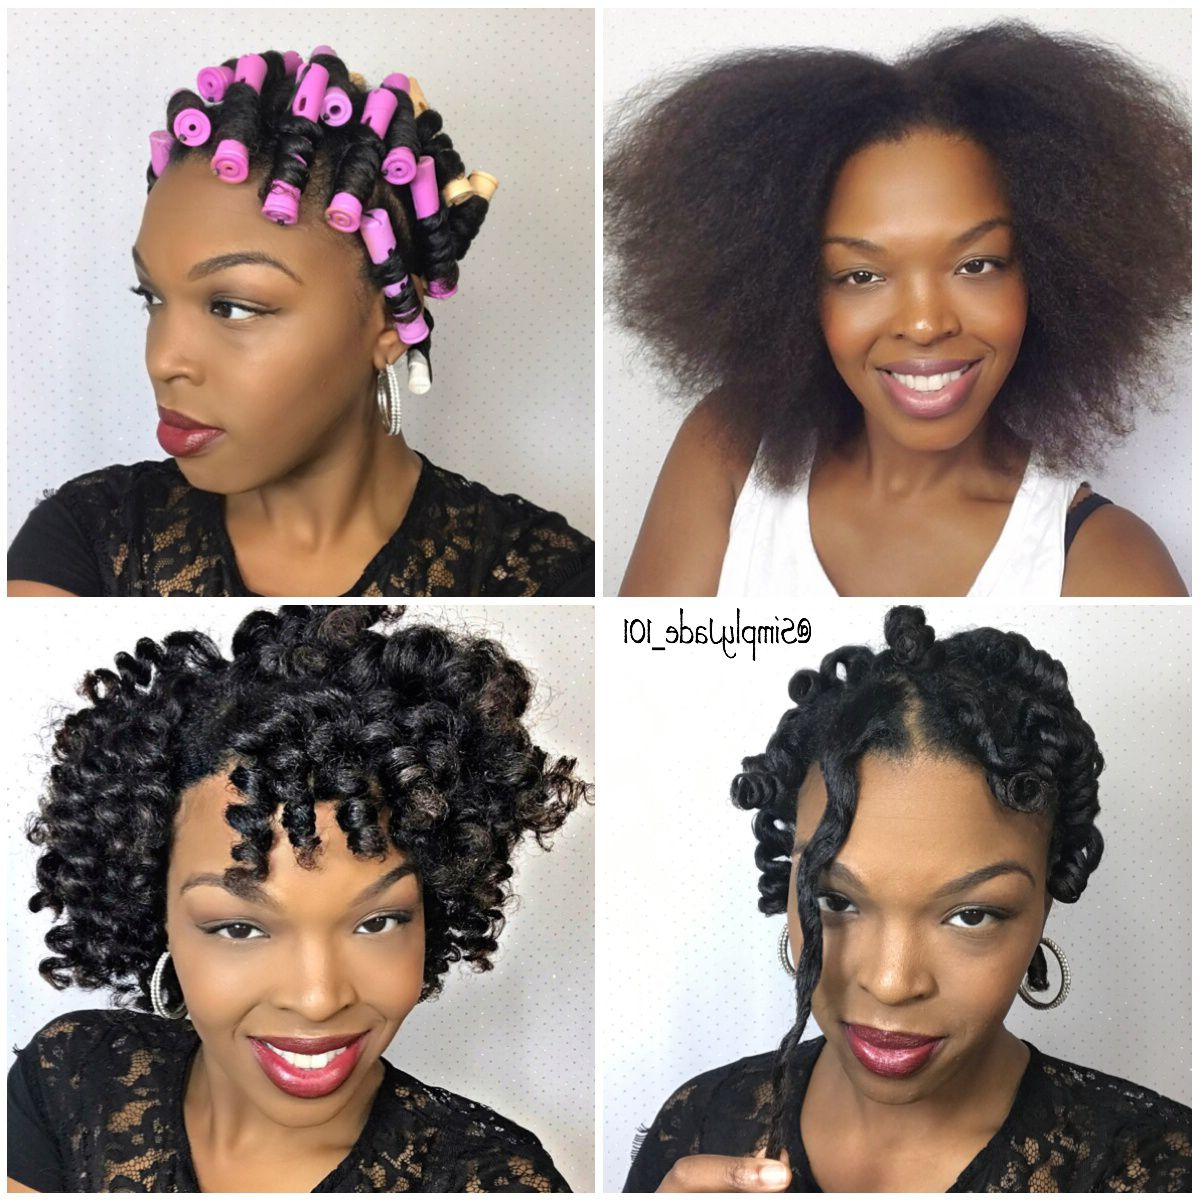 Current Medium Haircuts For Transitioning Hair For Perm Rod Set Pictorial For Short/medium Length Hair! Full Tutorial (View 6 of 20)